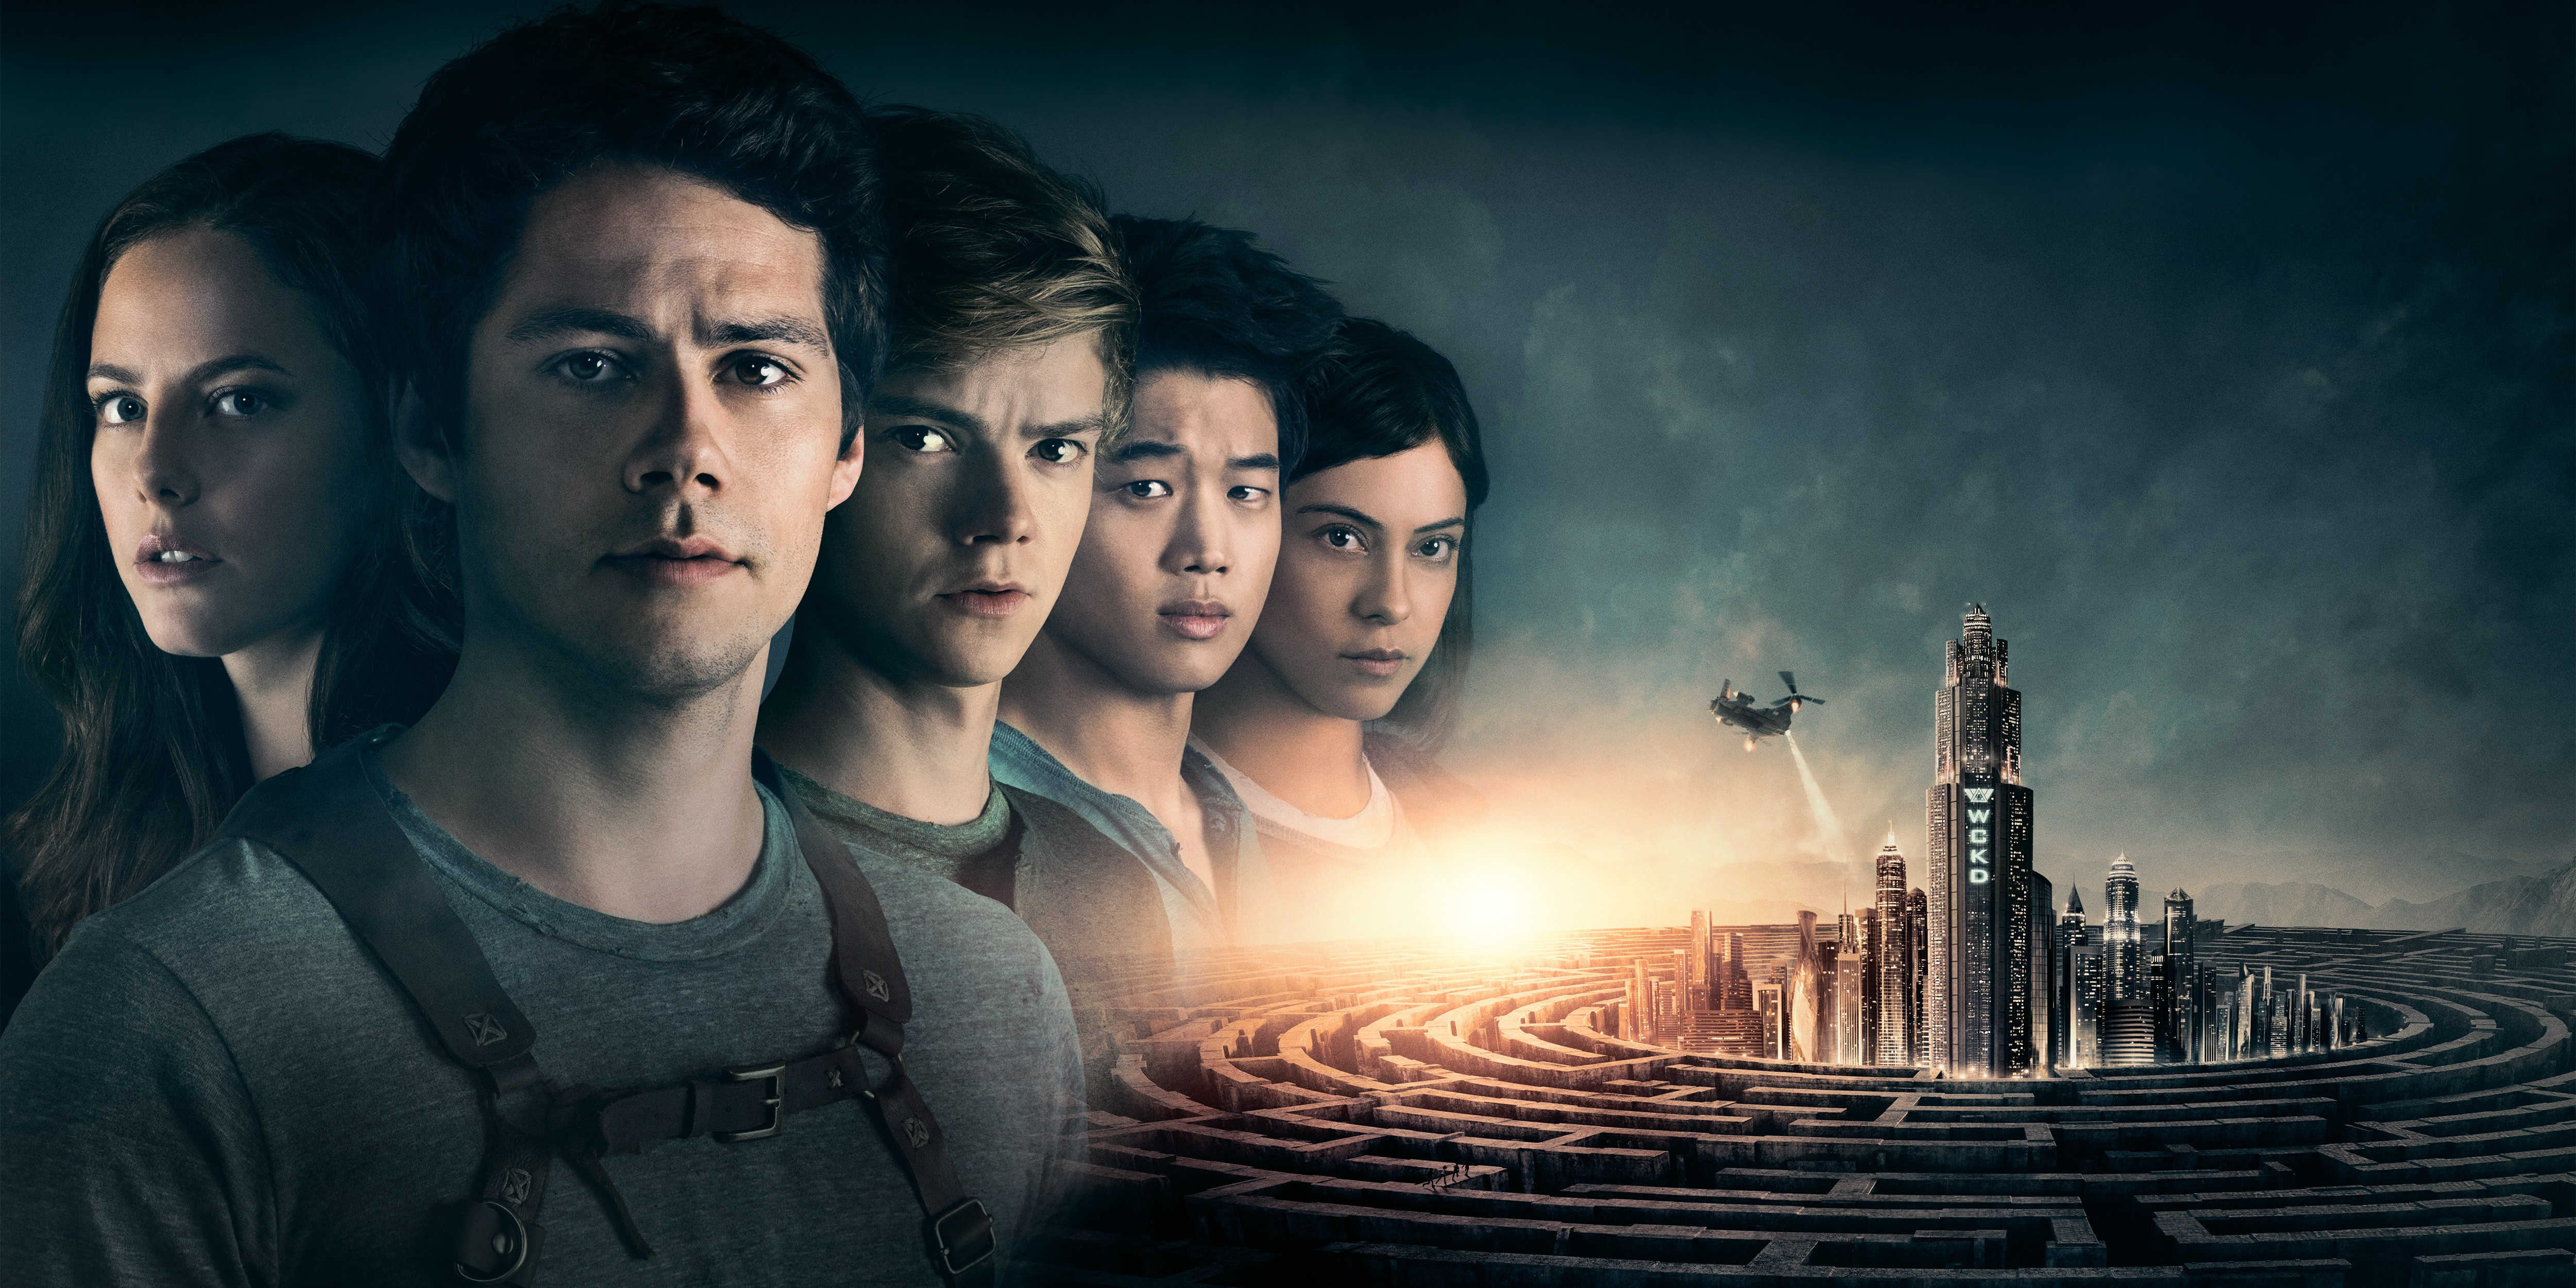 Wallpaper Maze Runner The Death Cure Dylan OBrien Thomas Brodie